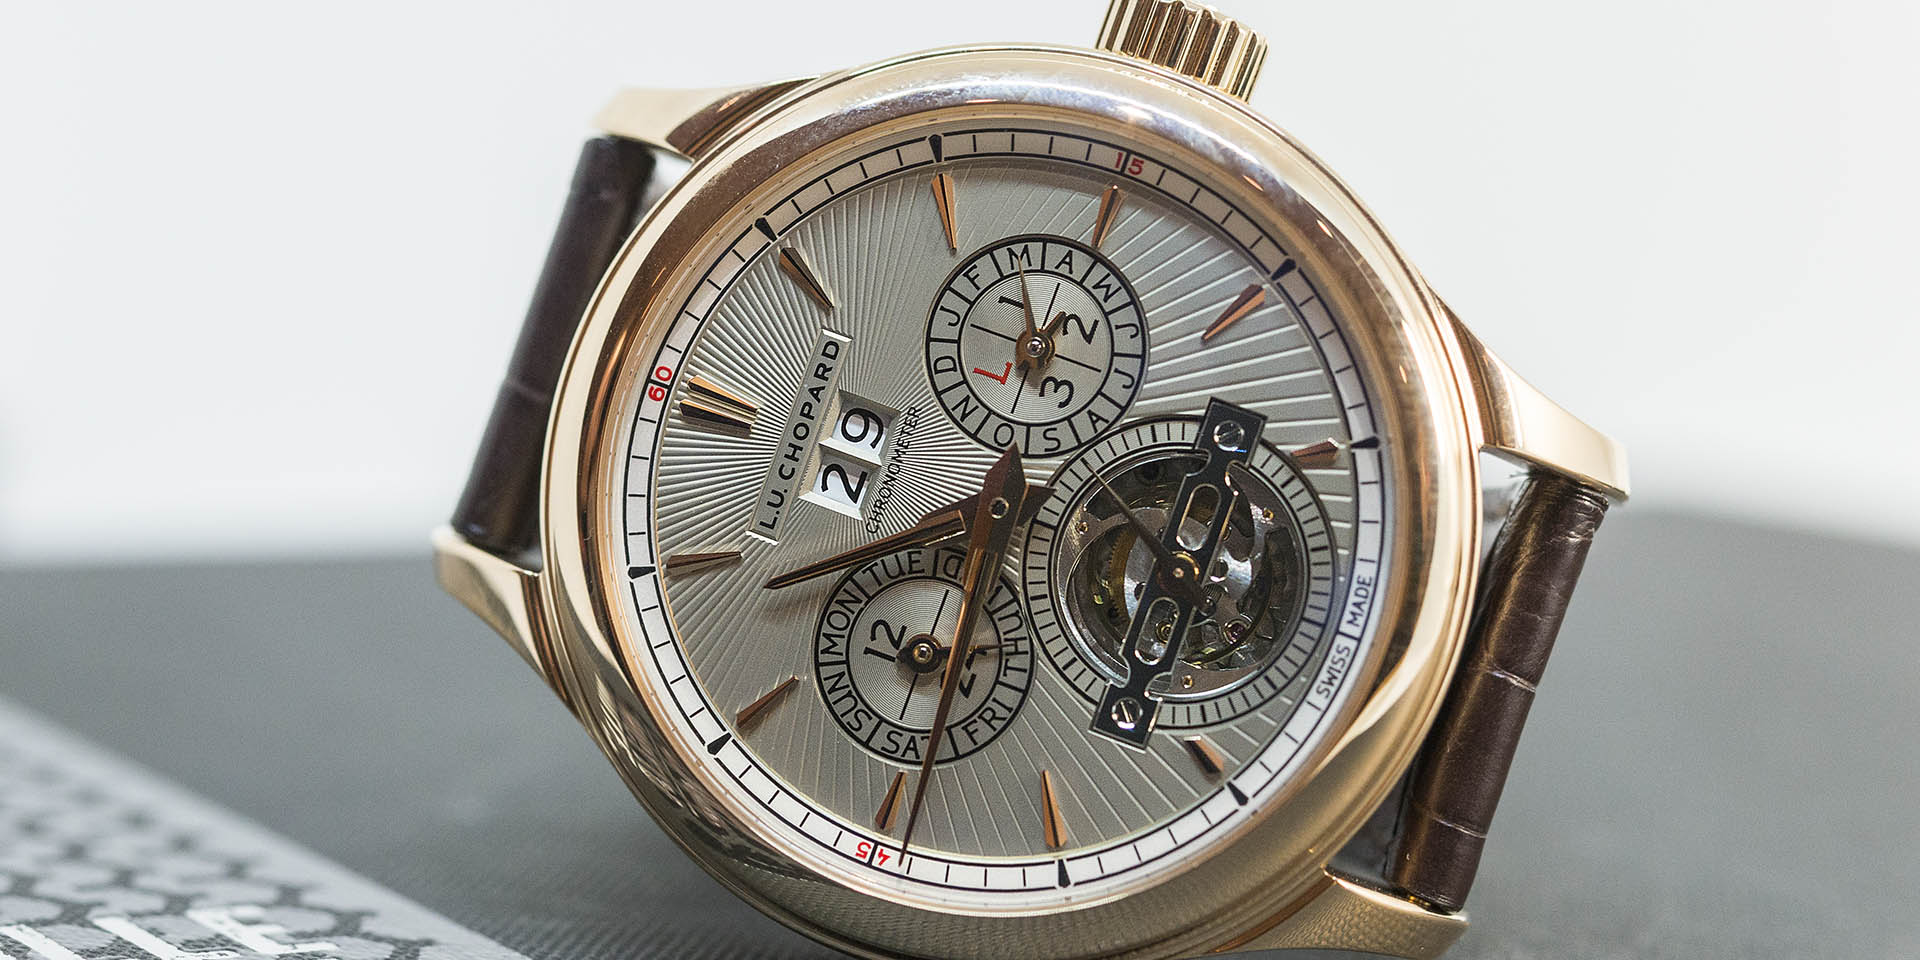 161925-5001-chopard-l-u-c-all-in-one-18k-pink-gold-2.jpg